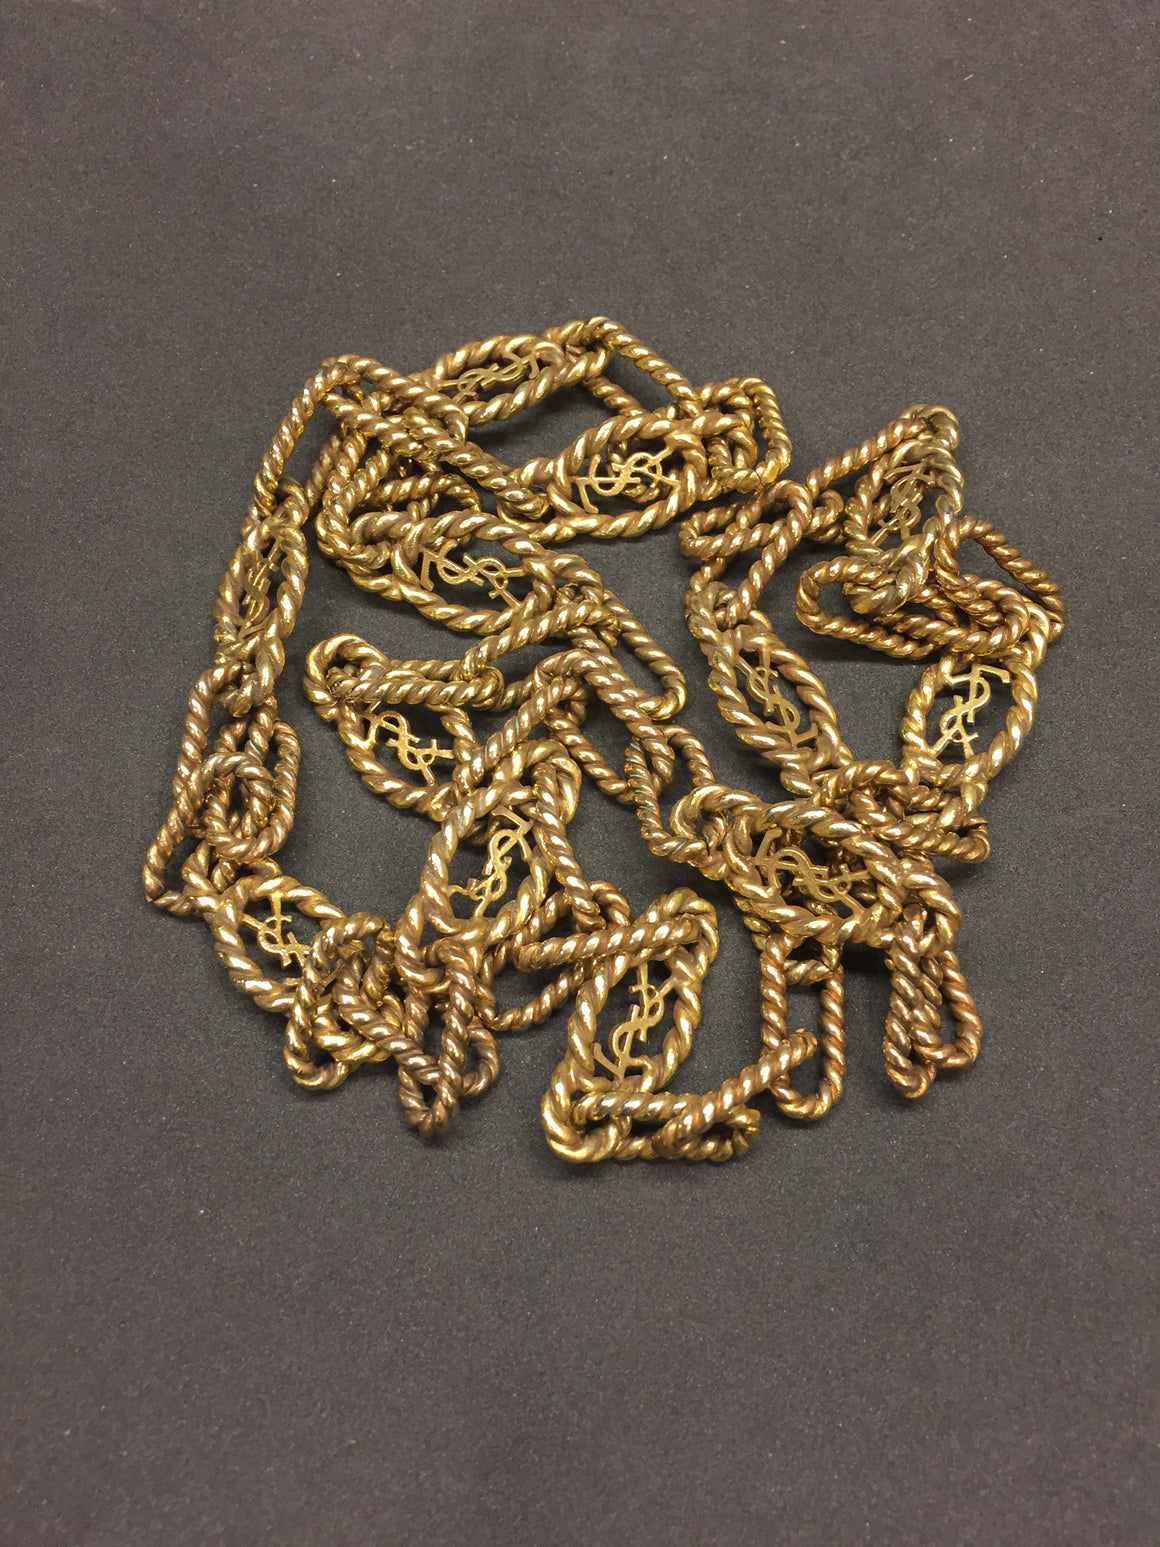 YVES ST. LAURENT Vintage Gilt Metal Iconic Logo Cabled Chain Link Fashion Necklace